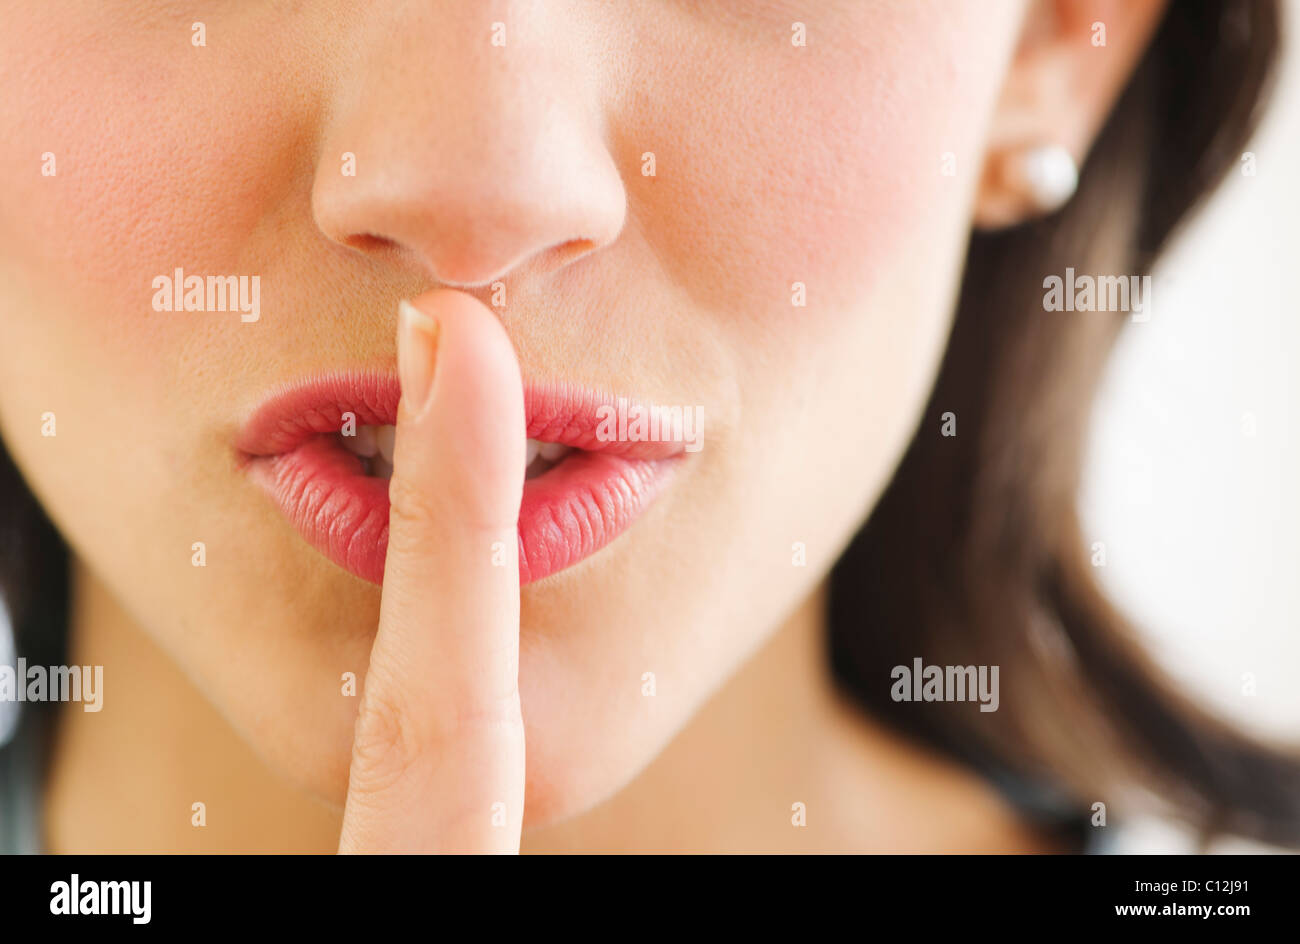 Young woman with finger on lips, close-up - Stock Image